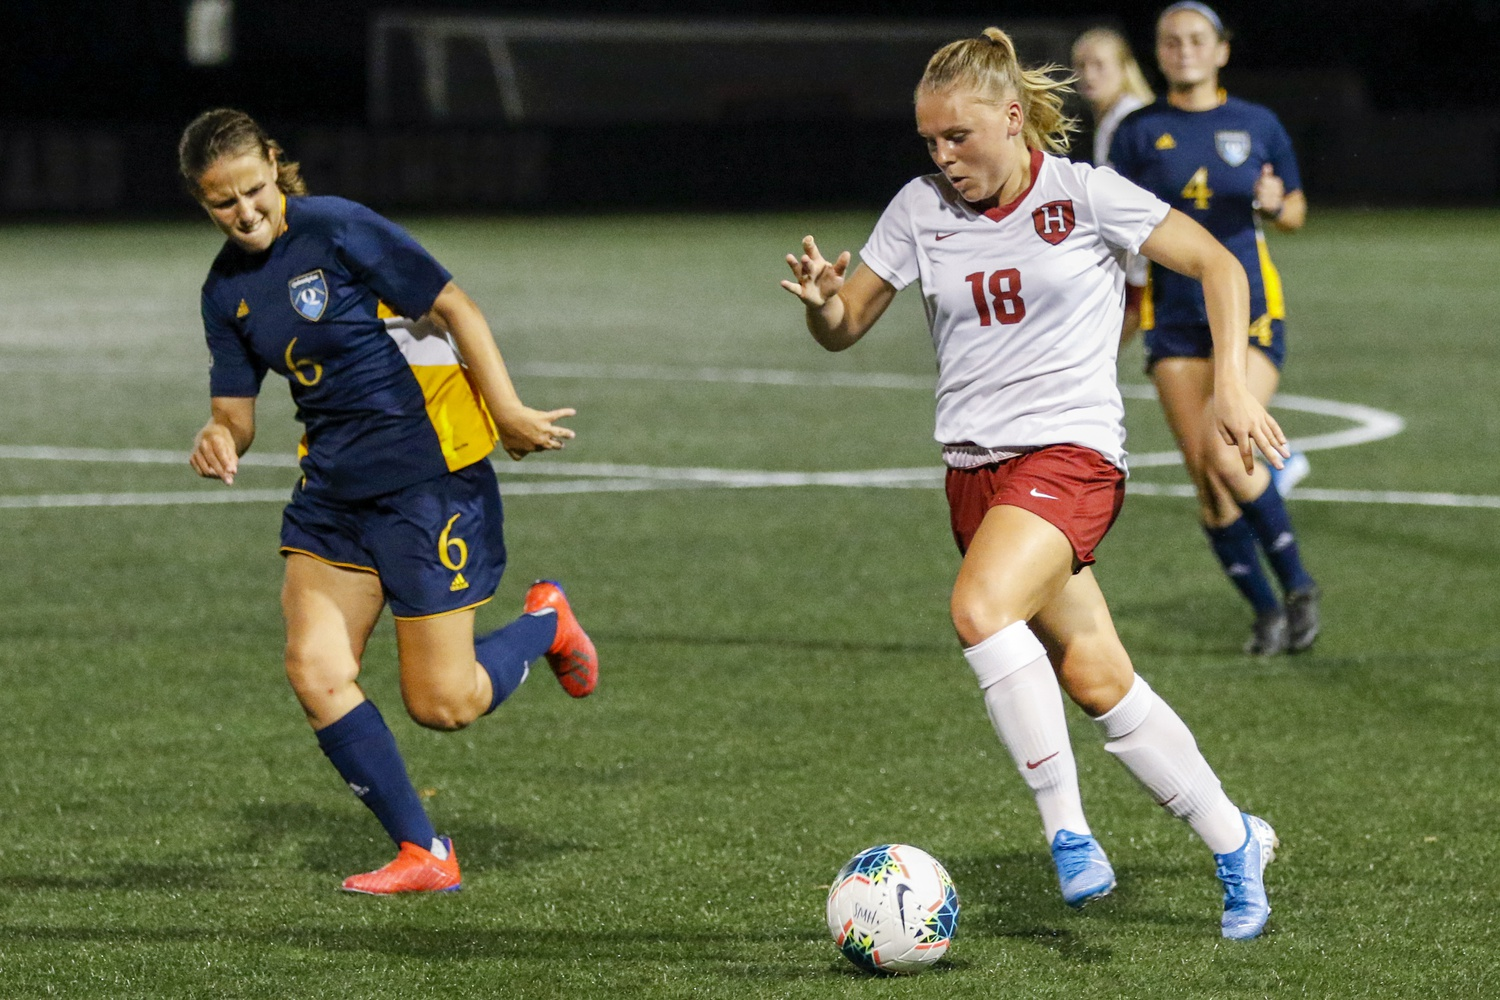 Lara Schenk dribbles past Quinnipiac players on Jordan Field in a contest on Sept. 4, 2019. The Crimson would go on to win the match 3-0.